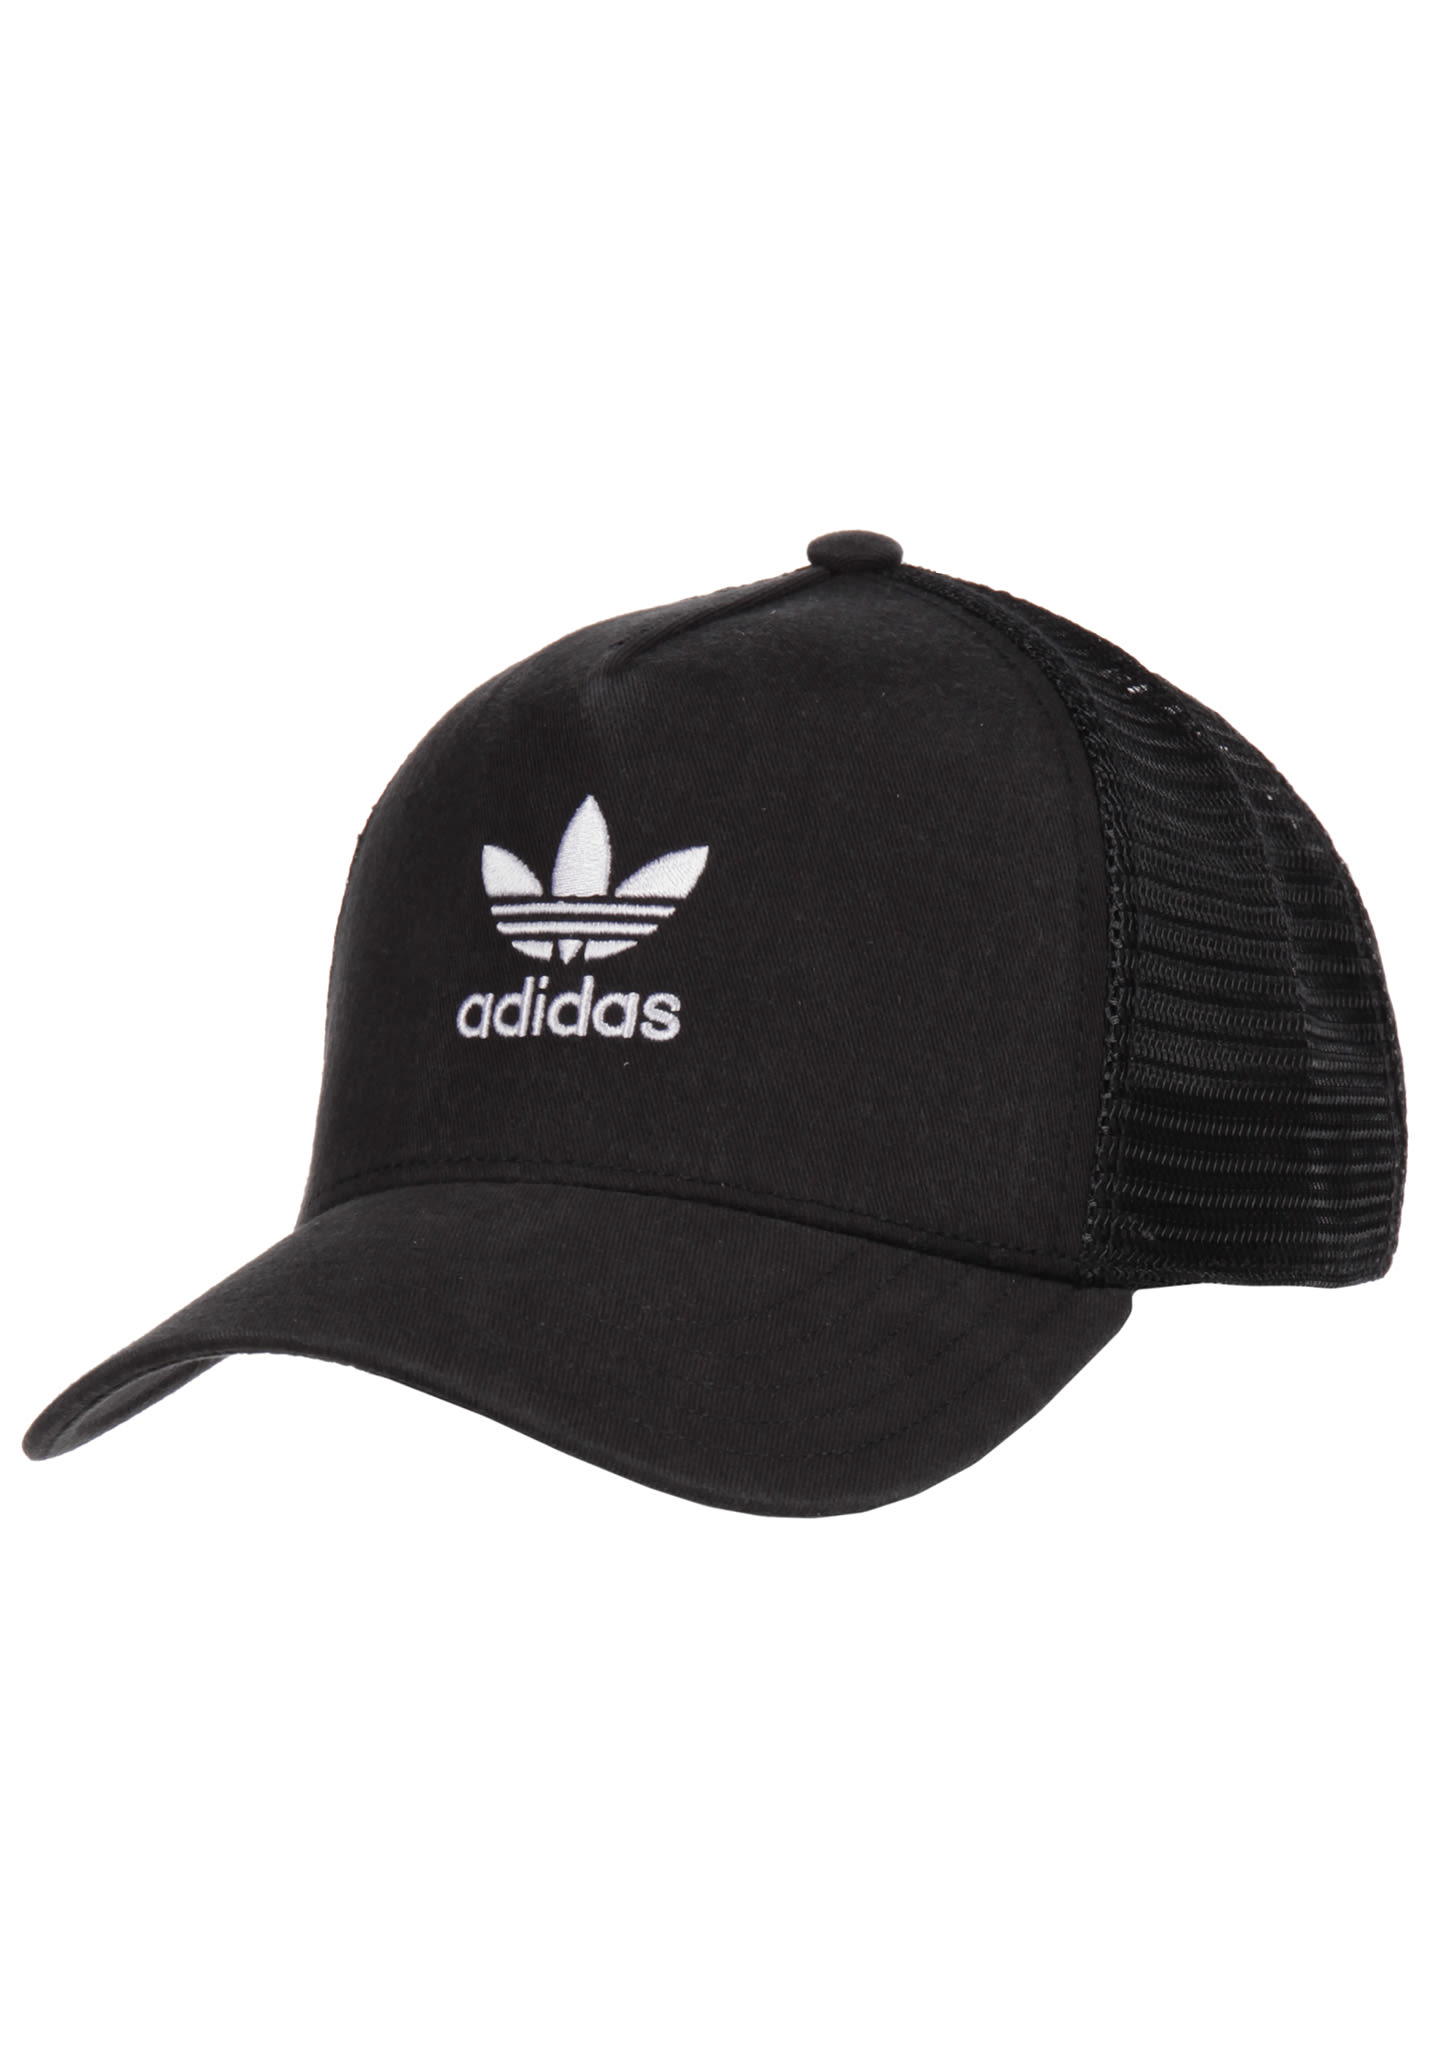 d081a796e06 ADIDAS ORIGINALS Trefoil - Trucker Cap for Men - Black - Planet Sports